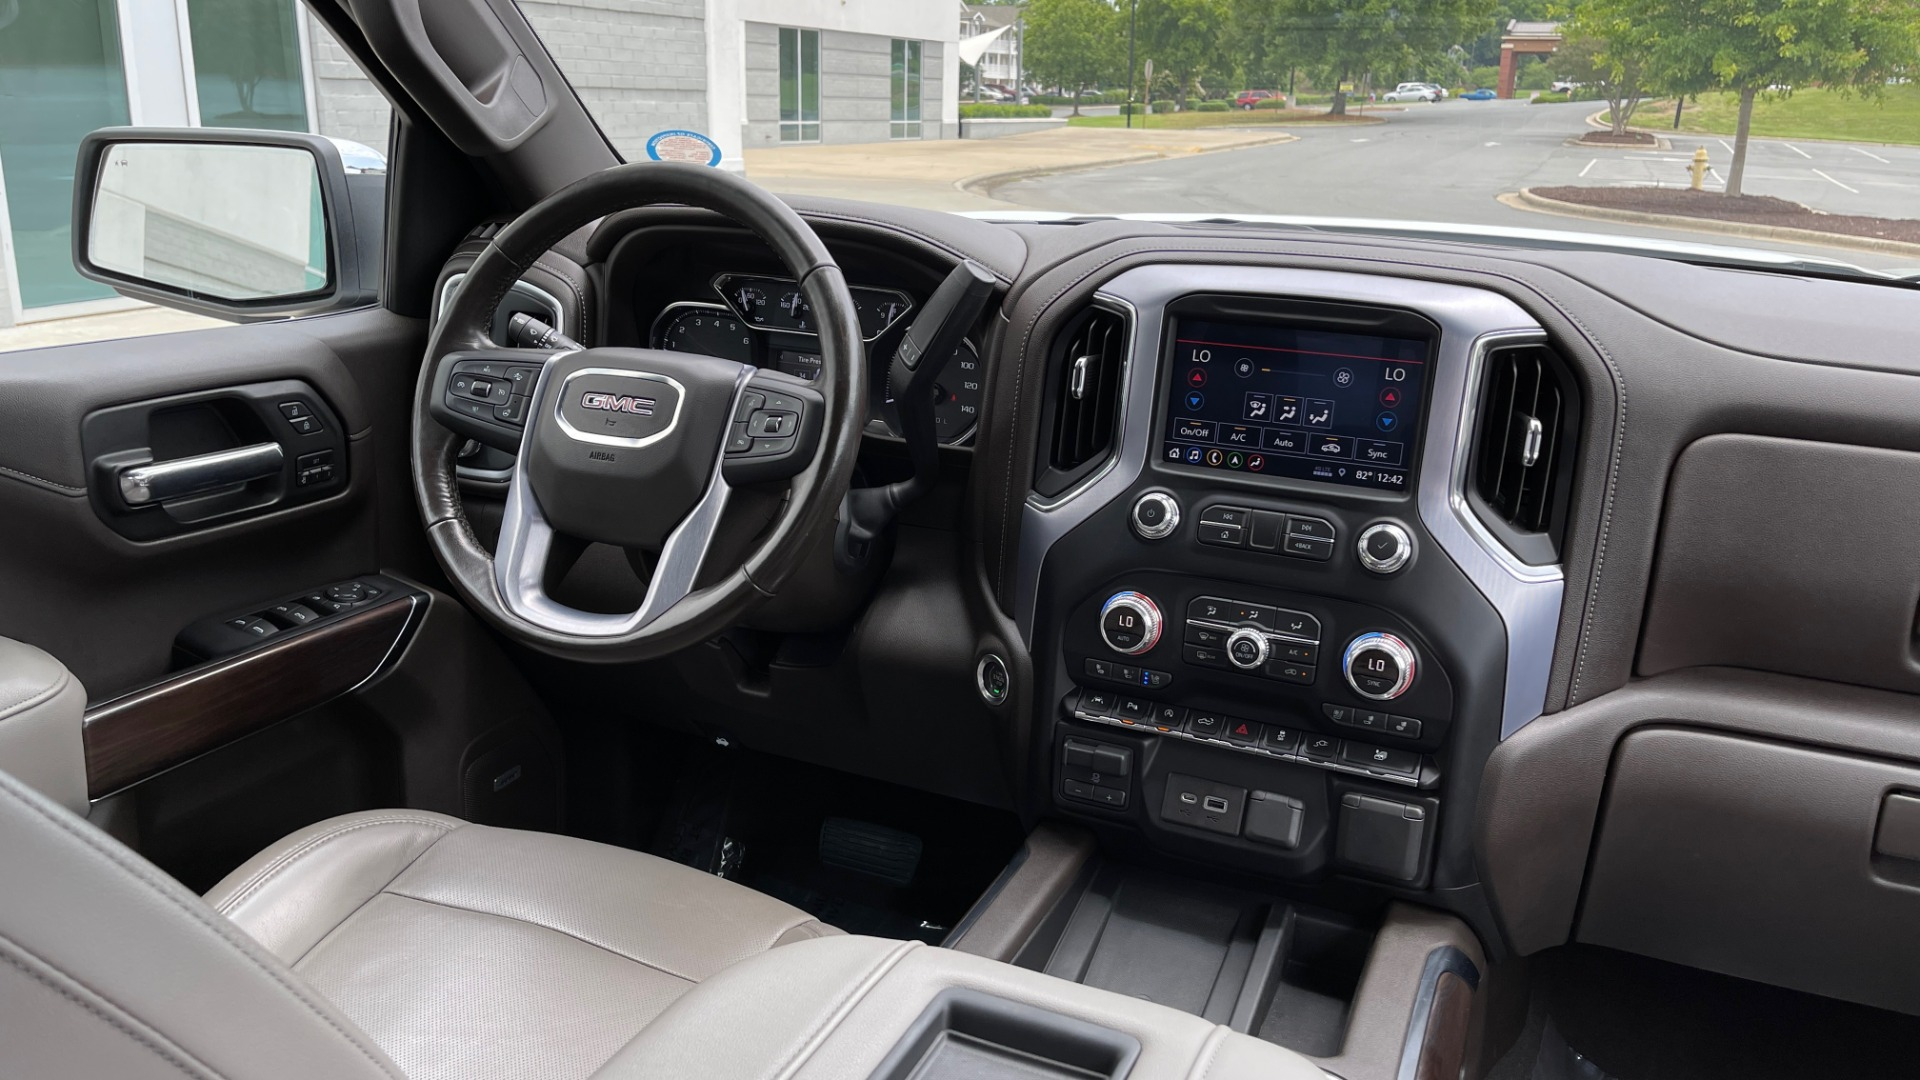 Used 2019 GMC SIERRA 1500 SLT 4X4 CREWCAB / 5.3L V8 / 8-SPD AUTO / NAV / BOSE / REARVIEW for sale $49,999 at Formula Imports in Charlotte NC 28227 78